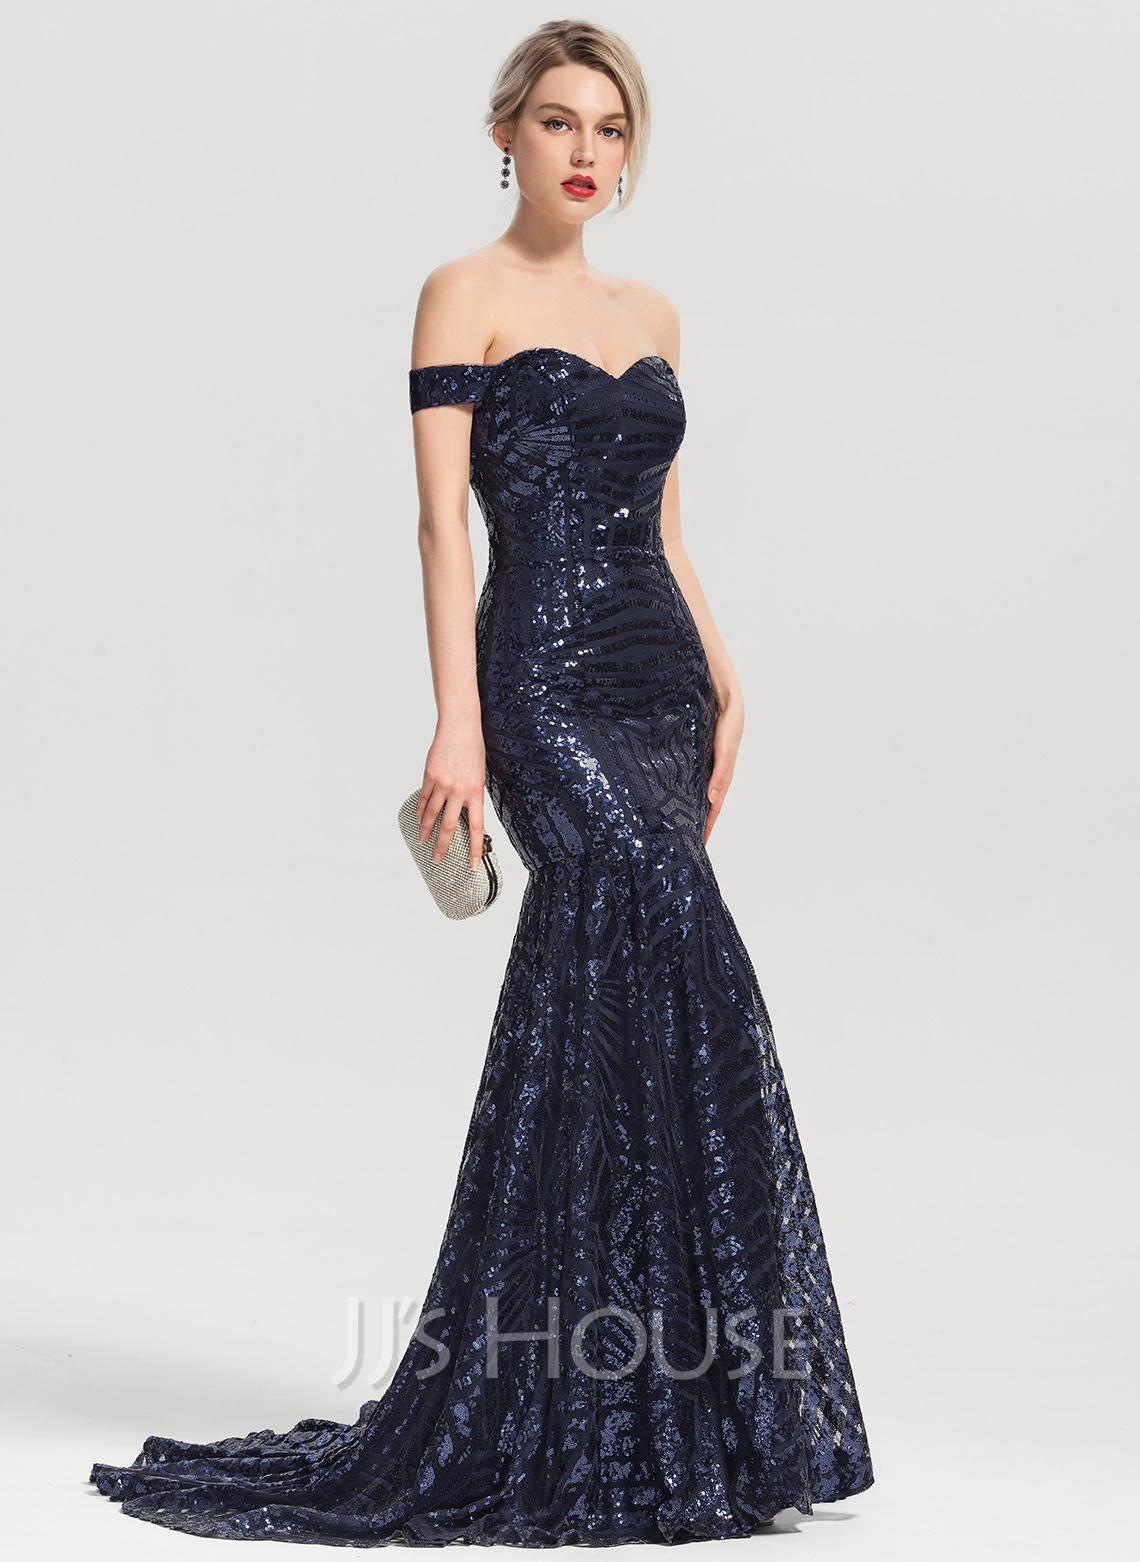 fbdd261a7fa9 Trumpet/Mermaid Off-the-Shoulder Sweep Train Sequined Evening Dress.  Loading zoom